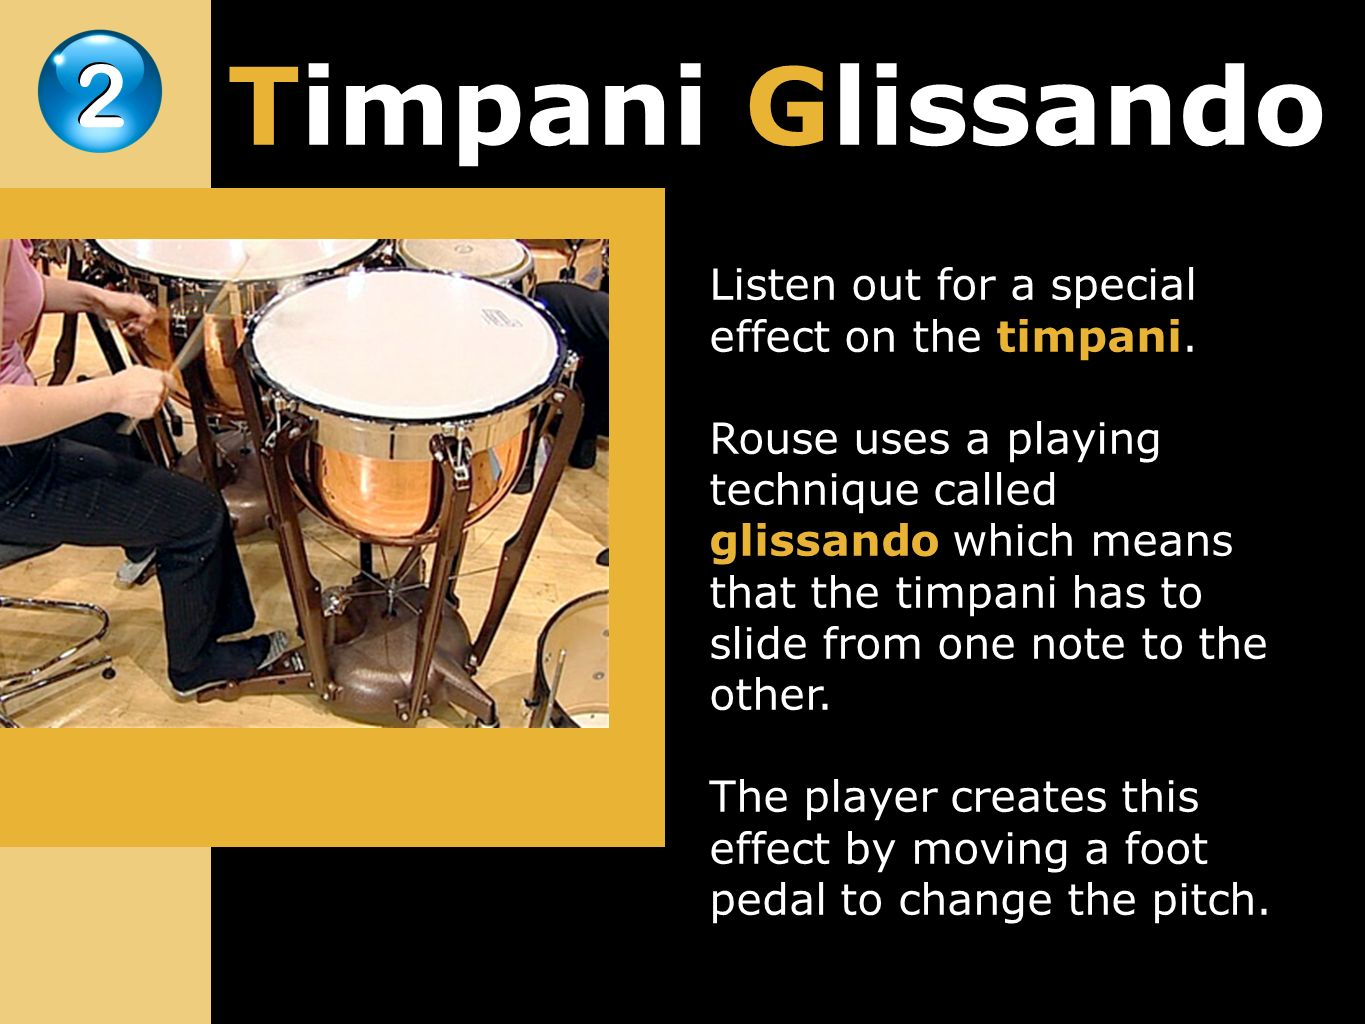 Listen out for a special effect on the timpani. Rouse uses a playing technique called glissando which means that the timpani has to slide from one not